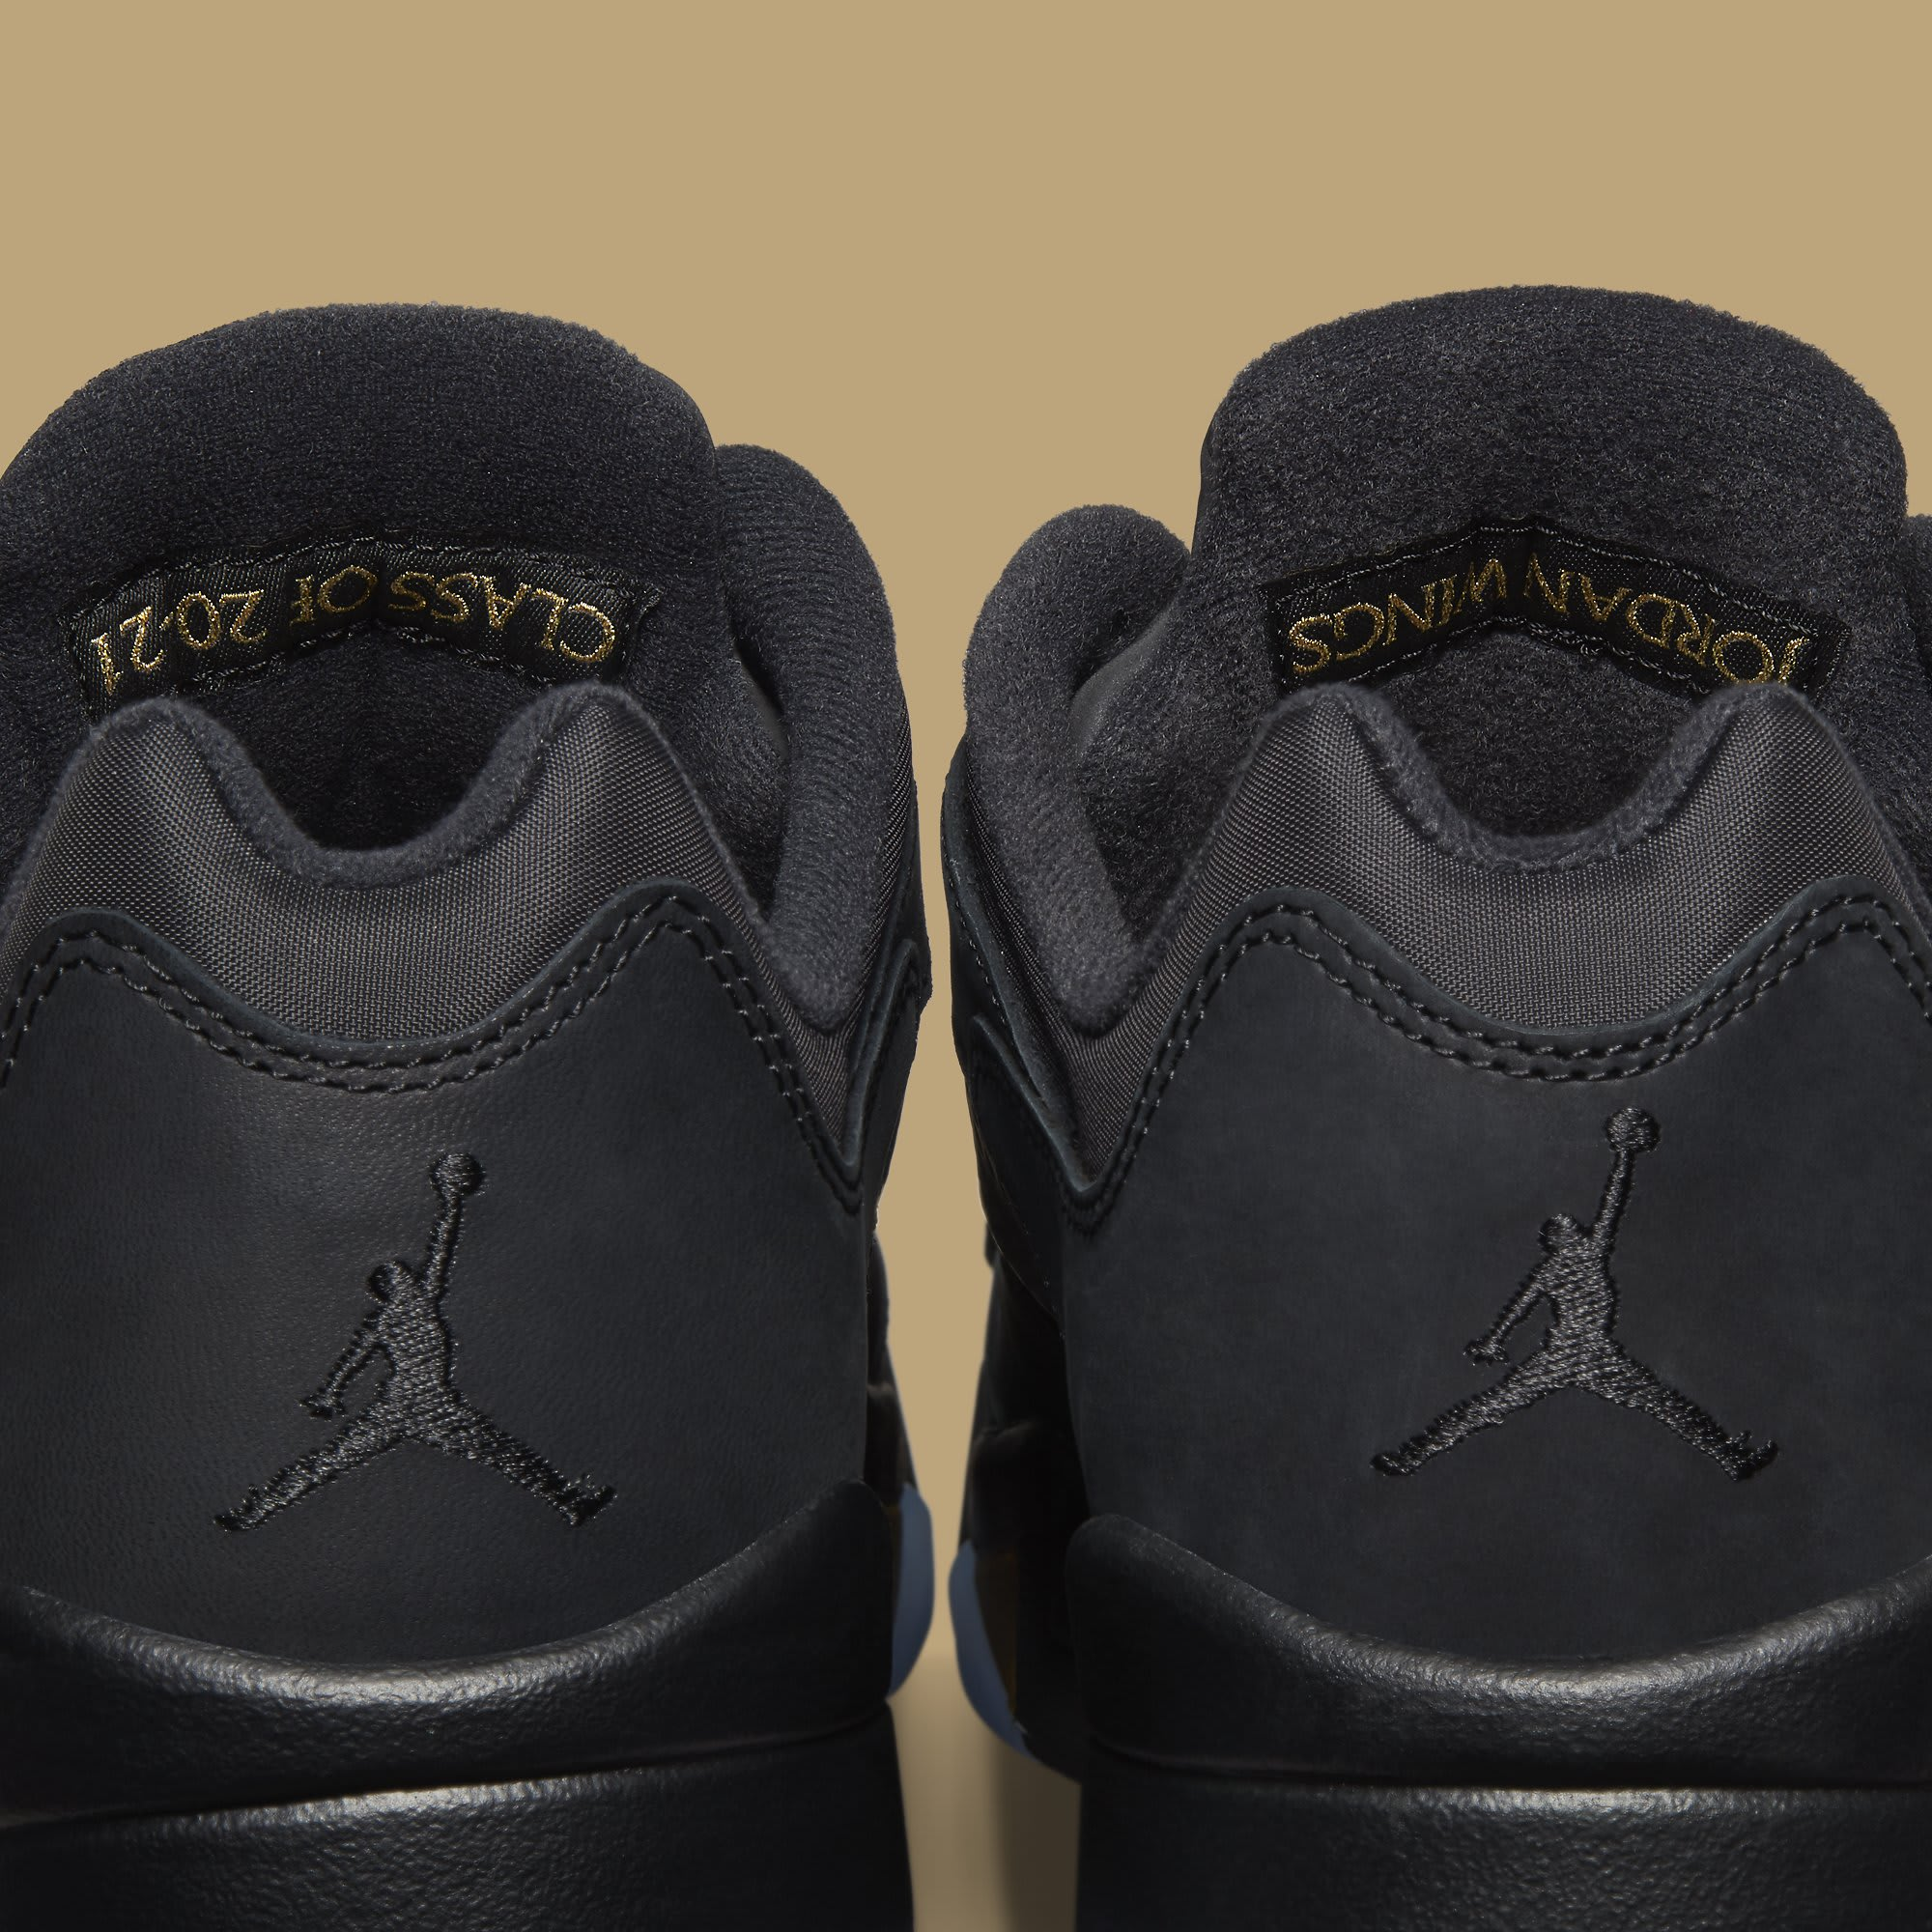 Air Jordan 5 Retro Low Wings 'Class of 2020-21' DJ1094-001 Heel